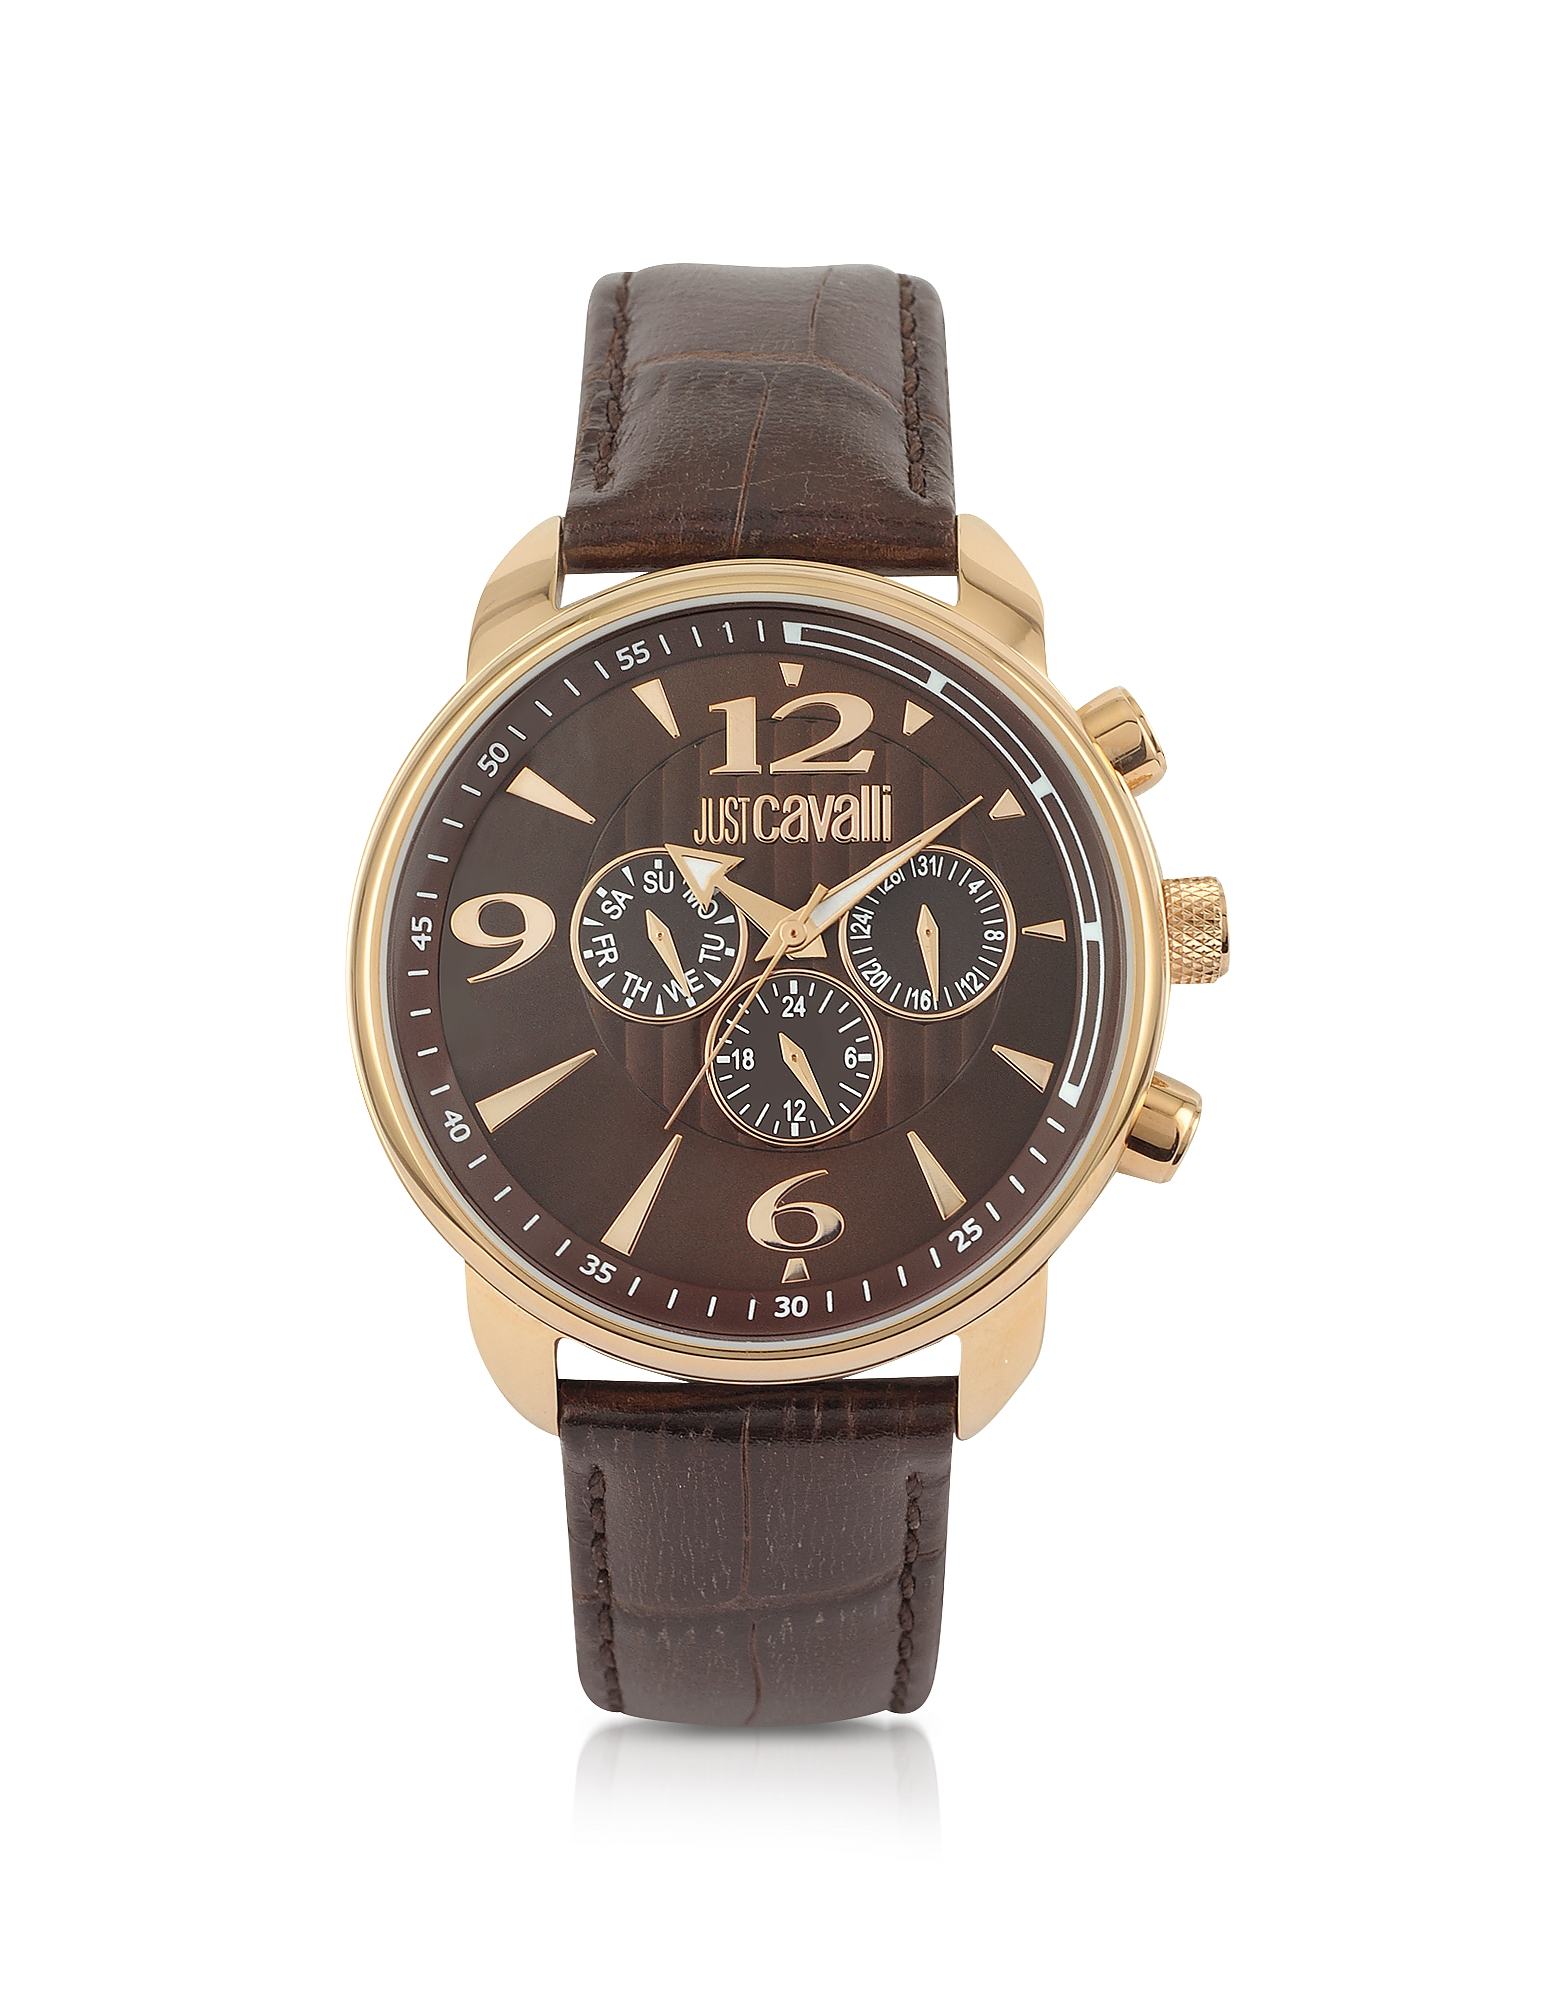 Just Cavalli Men's Watches, Earth - Brown Croco Multifunction Watch